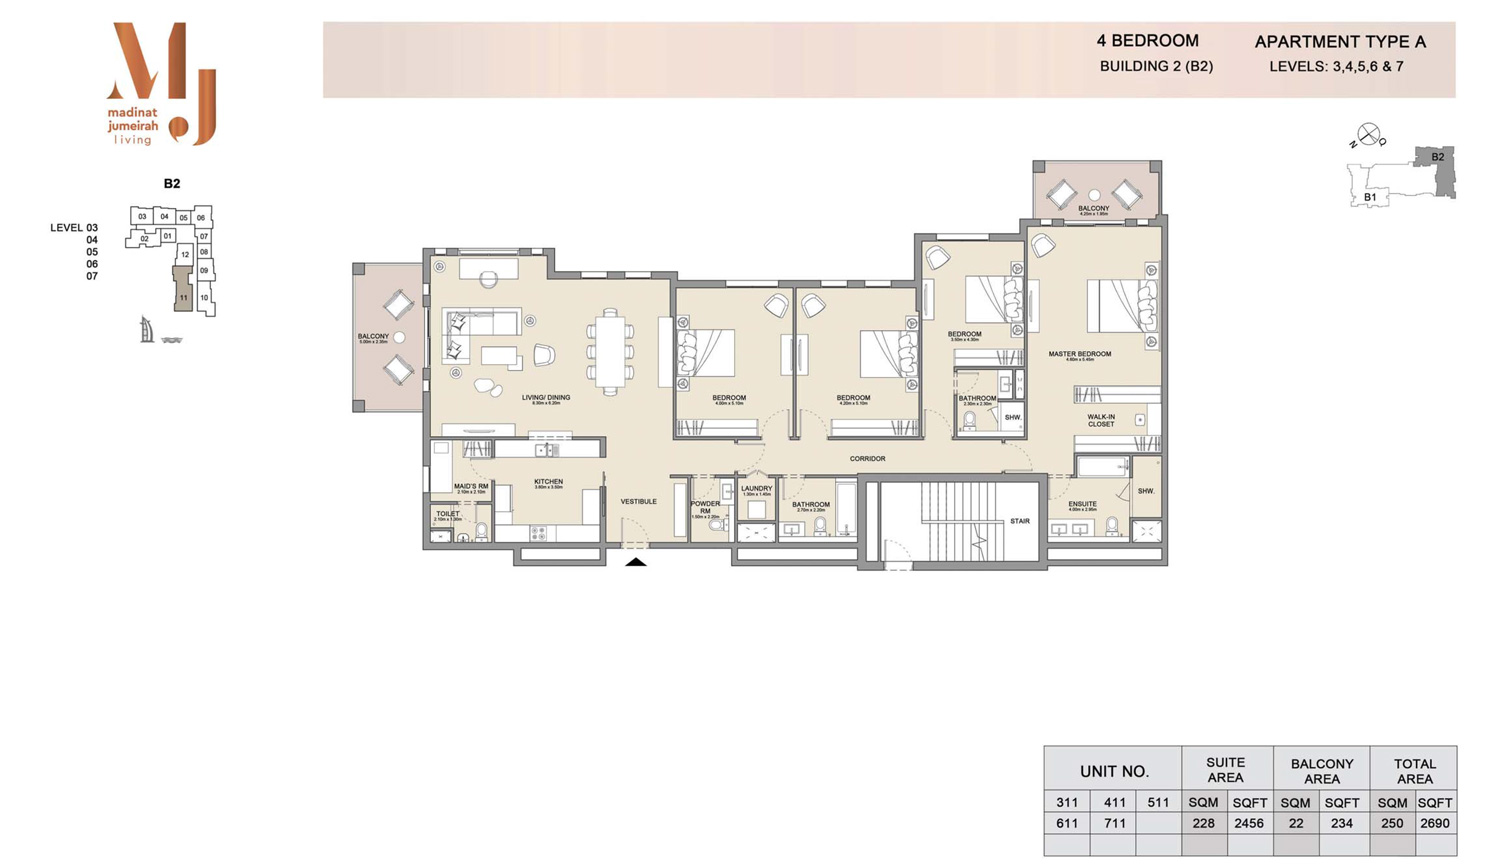 4 Bedroom B 2, Type A, Levels 3 to 7, Size 2690 sq.ft